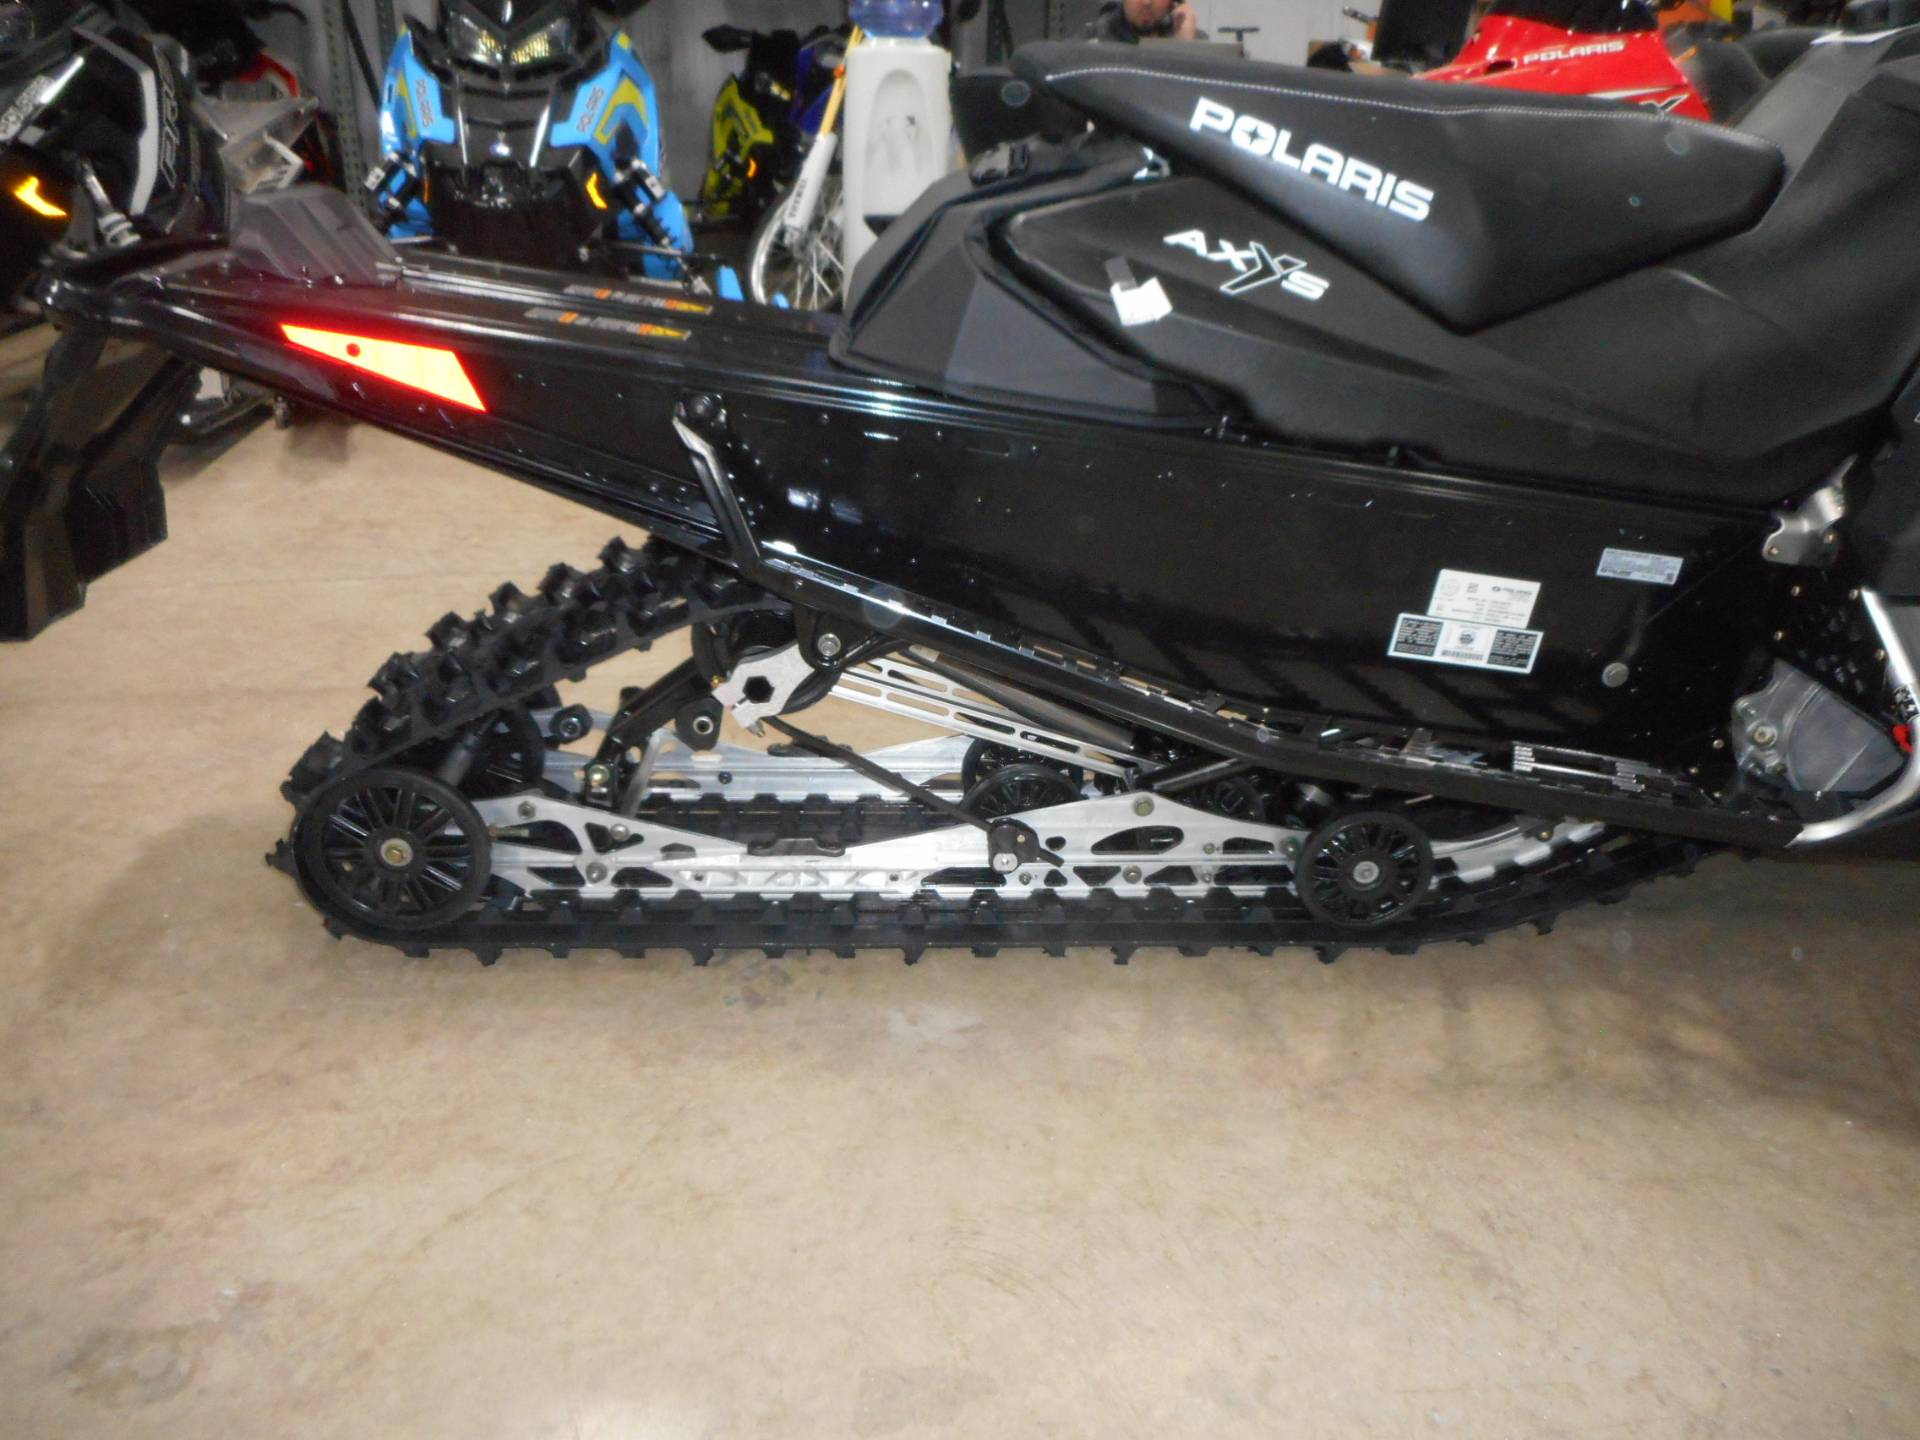 2020 Polaris 600 Indy SP 137 ES in Belvidere, Illinois - Photo 5